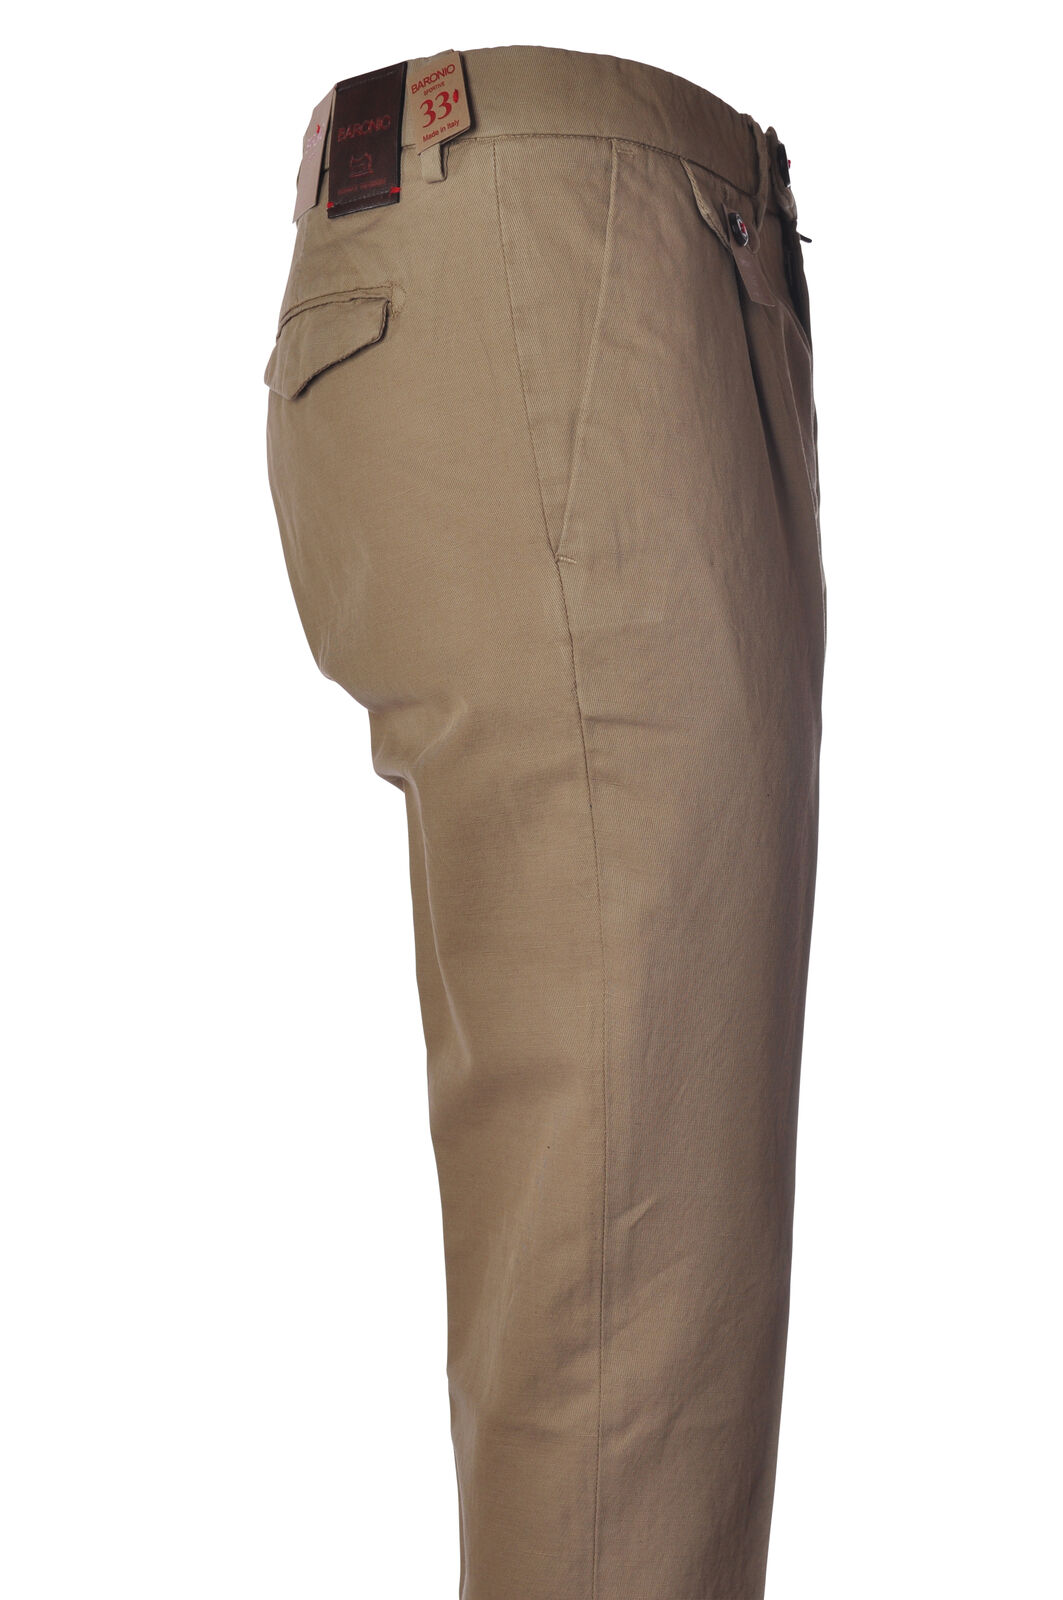 Baronio - Pants-Pants - Man - Beige - 5313920F180745